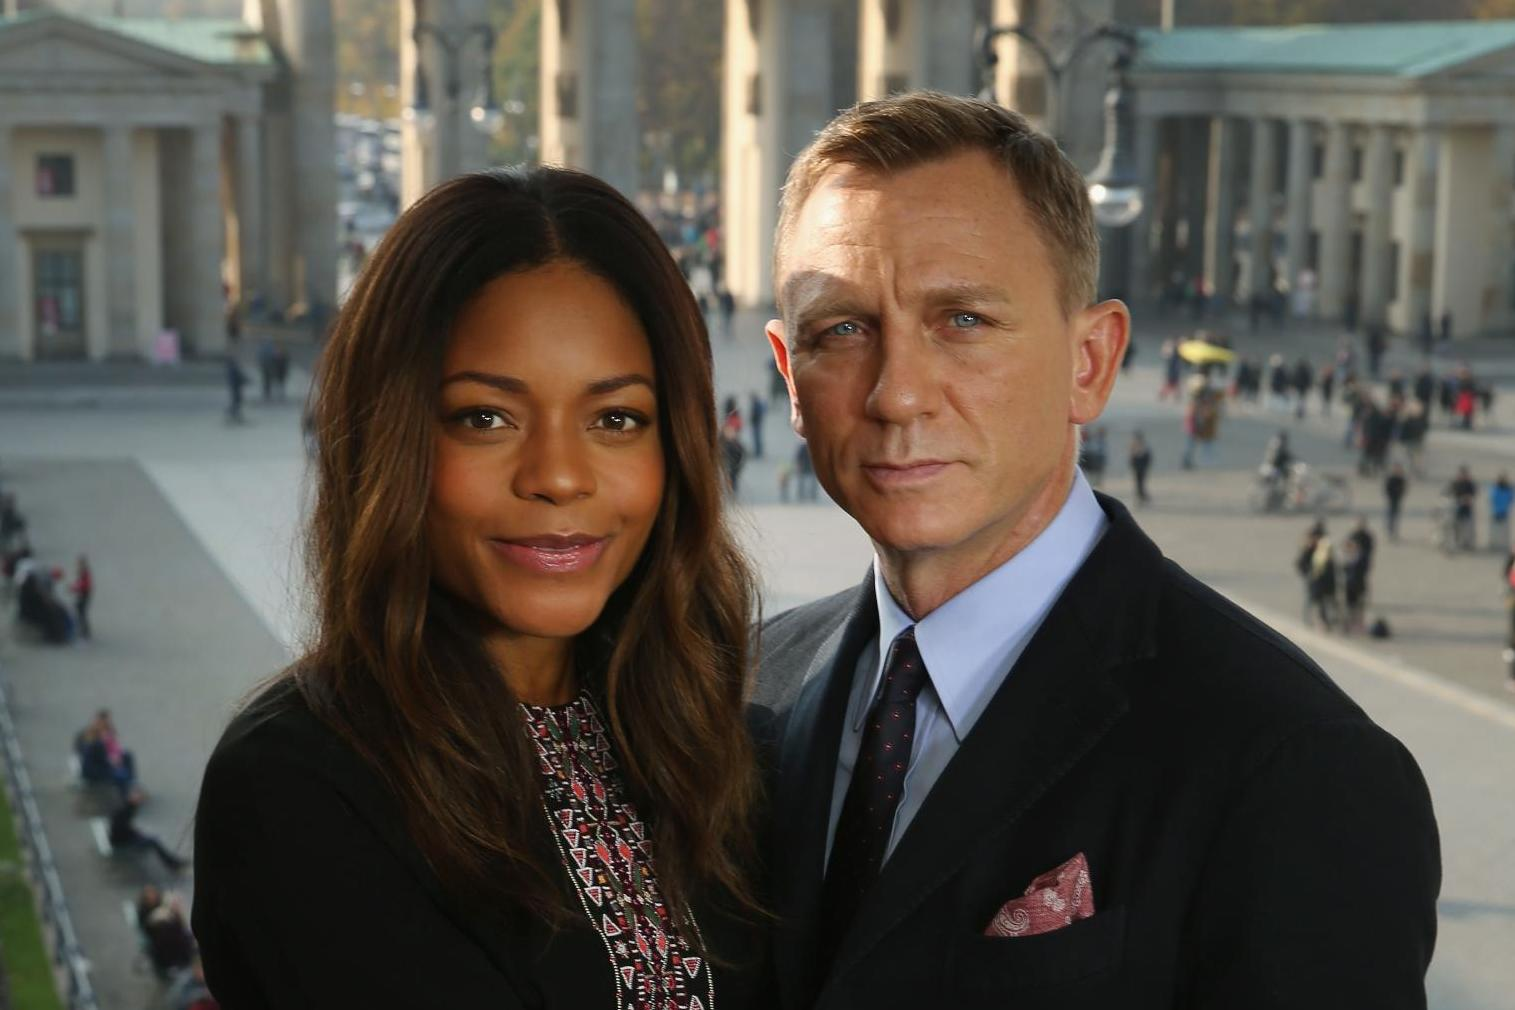 Bond 25 may not be Daniel Craig's last film as 007, co-star Naomie Harris hints